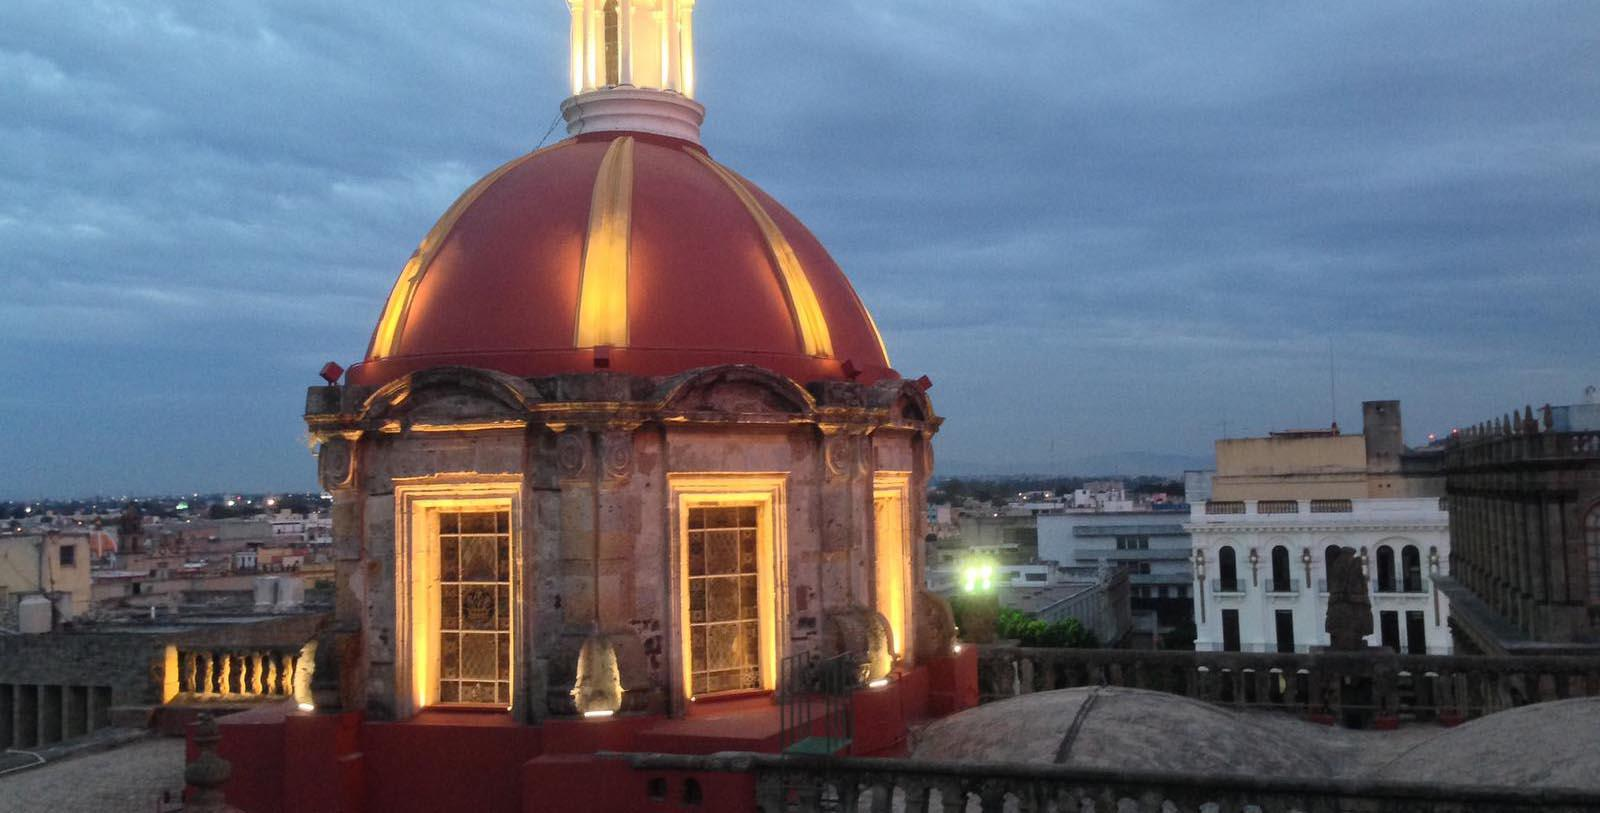 Image of Rooftop on Hotel de Mendoza, 1968, Member of Historic Hotels Worldwide, in Guadalajara, Mexico, Special Offers, Discounted Rates, Families, Romantic Escape, Honeymoons, Anniversaries, Reunions